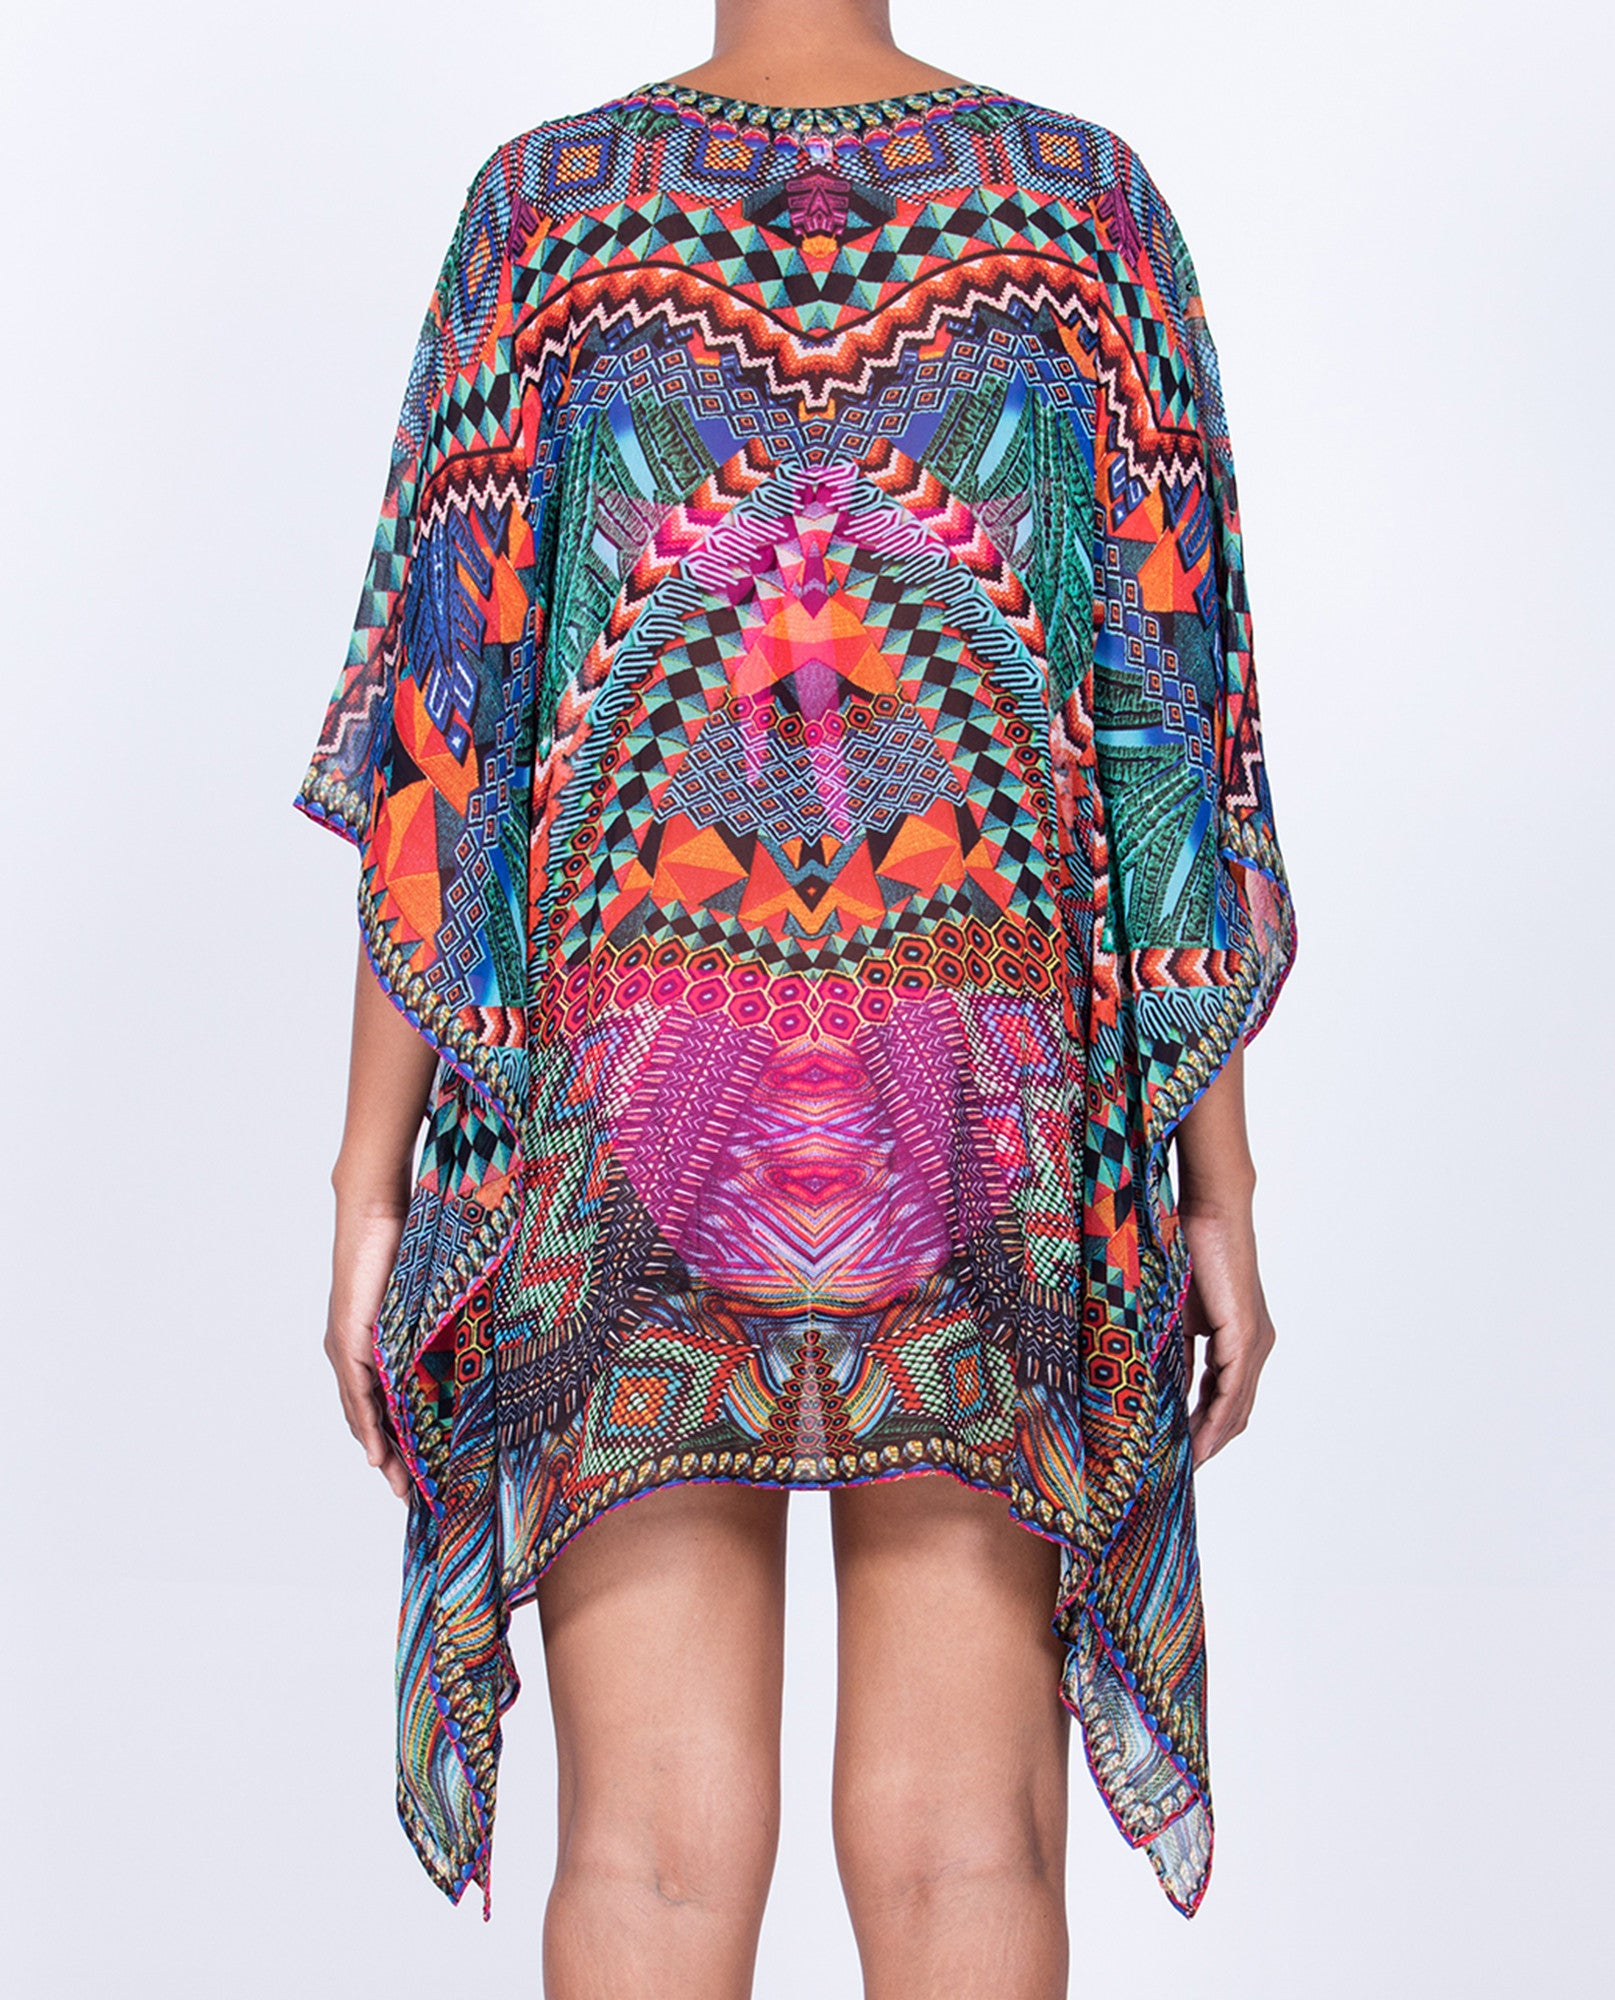 Indian Inspired Kaftan Short V-neck - Multi Orange / Blue Geometric Border Print